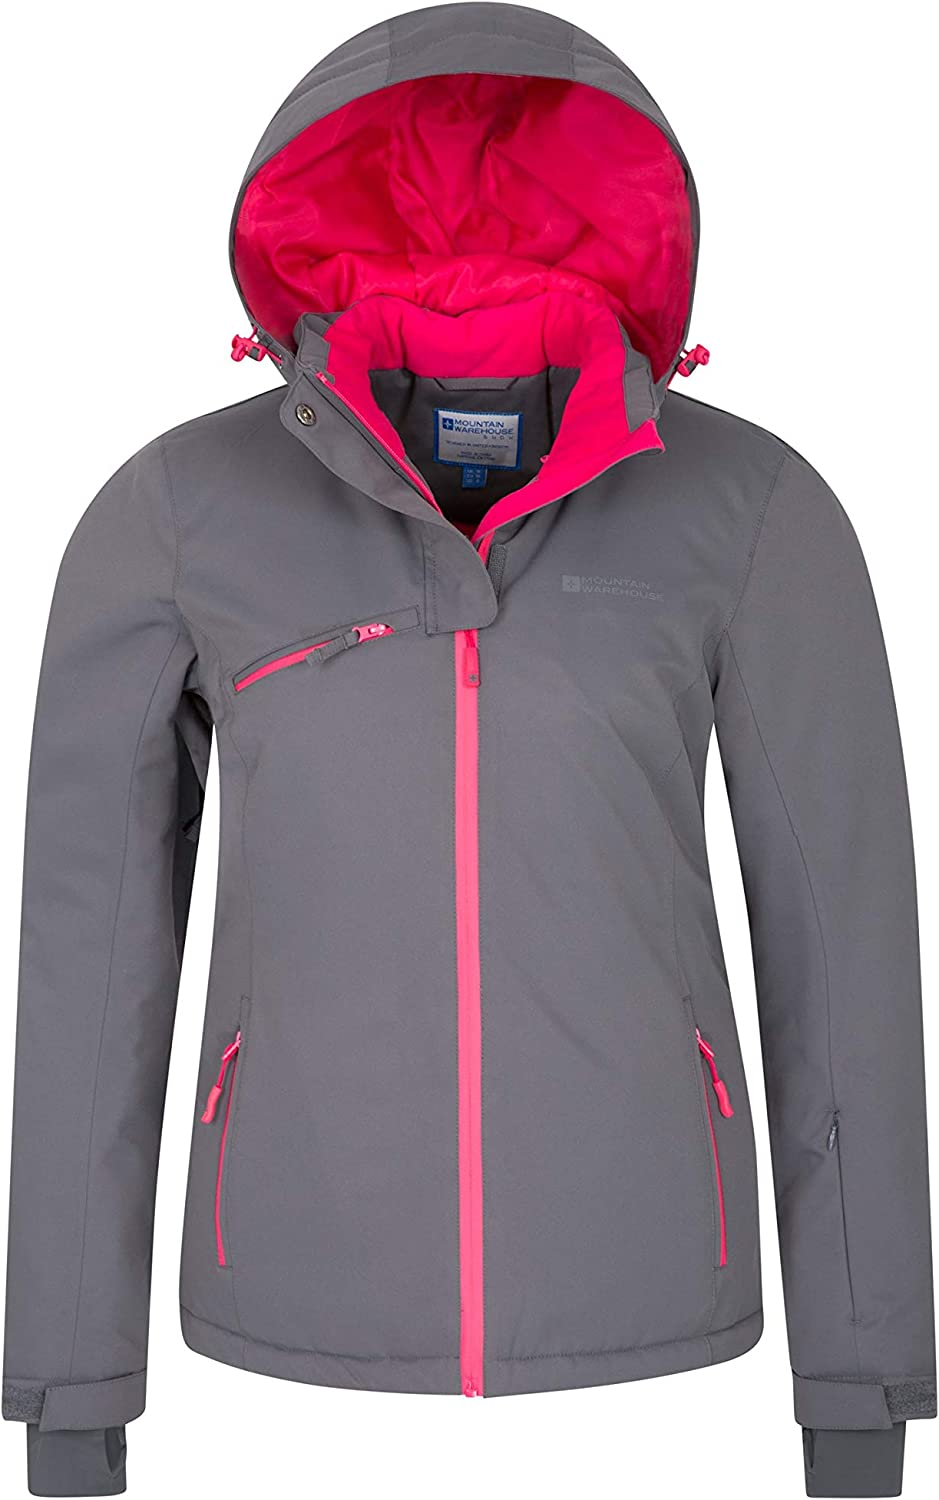 Mountain Warehouse Freezestyle Womens Ski Jacket Waterproof Hood Zip Pockets